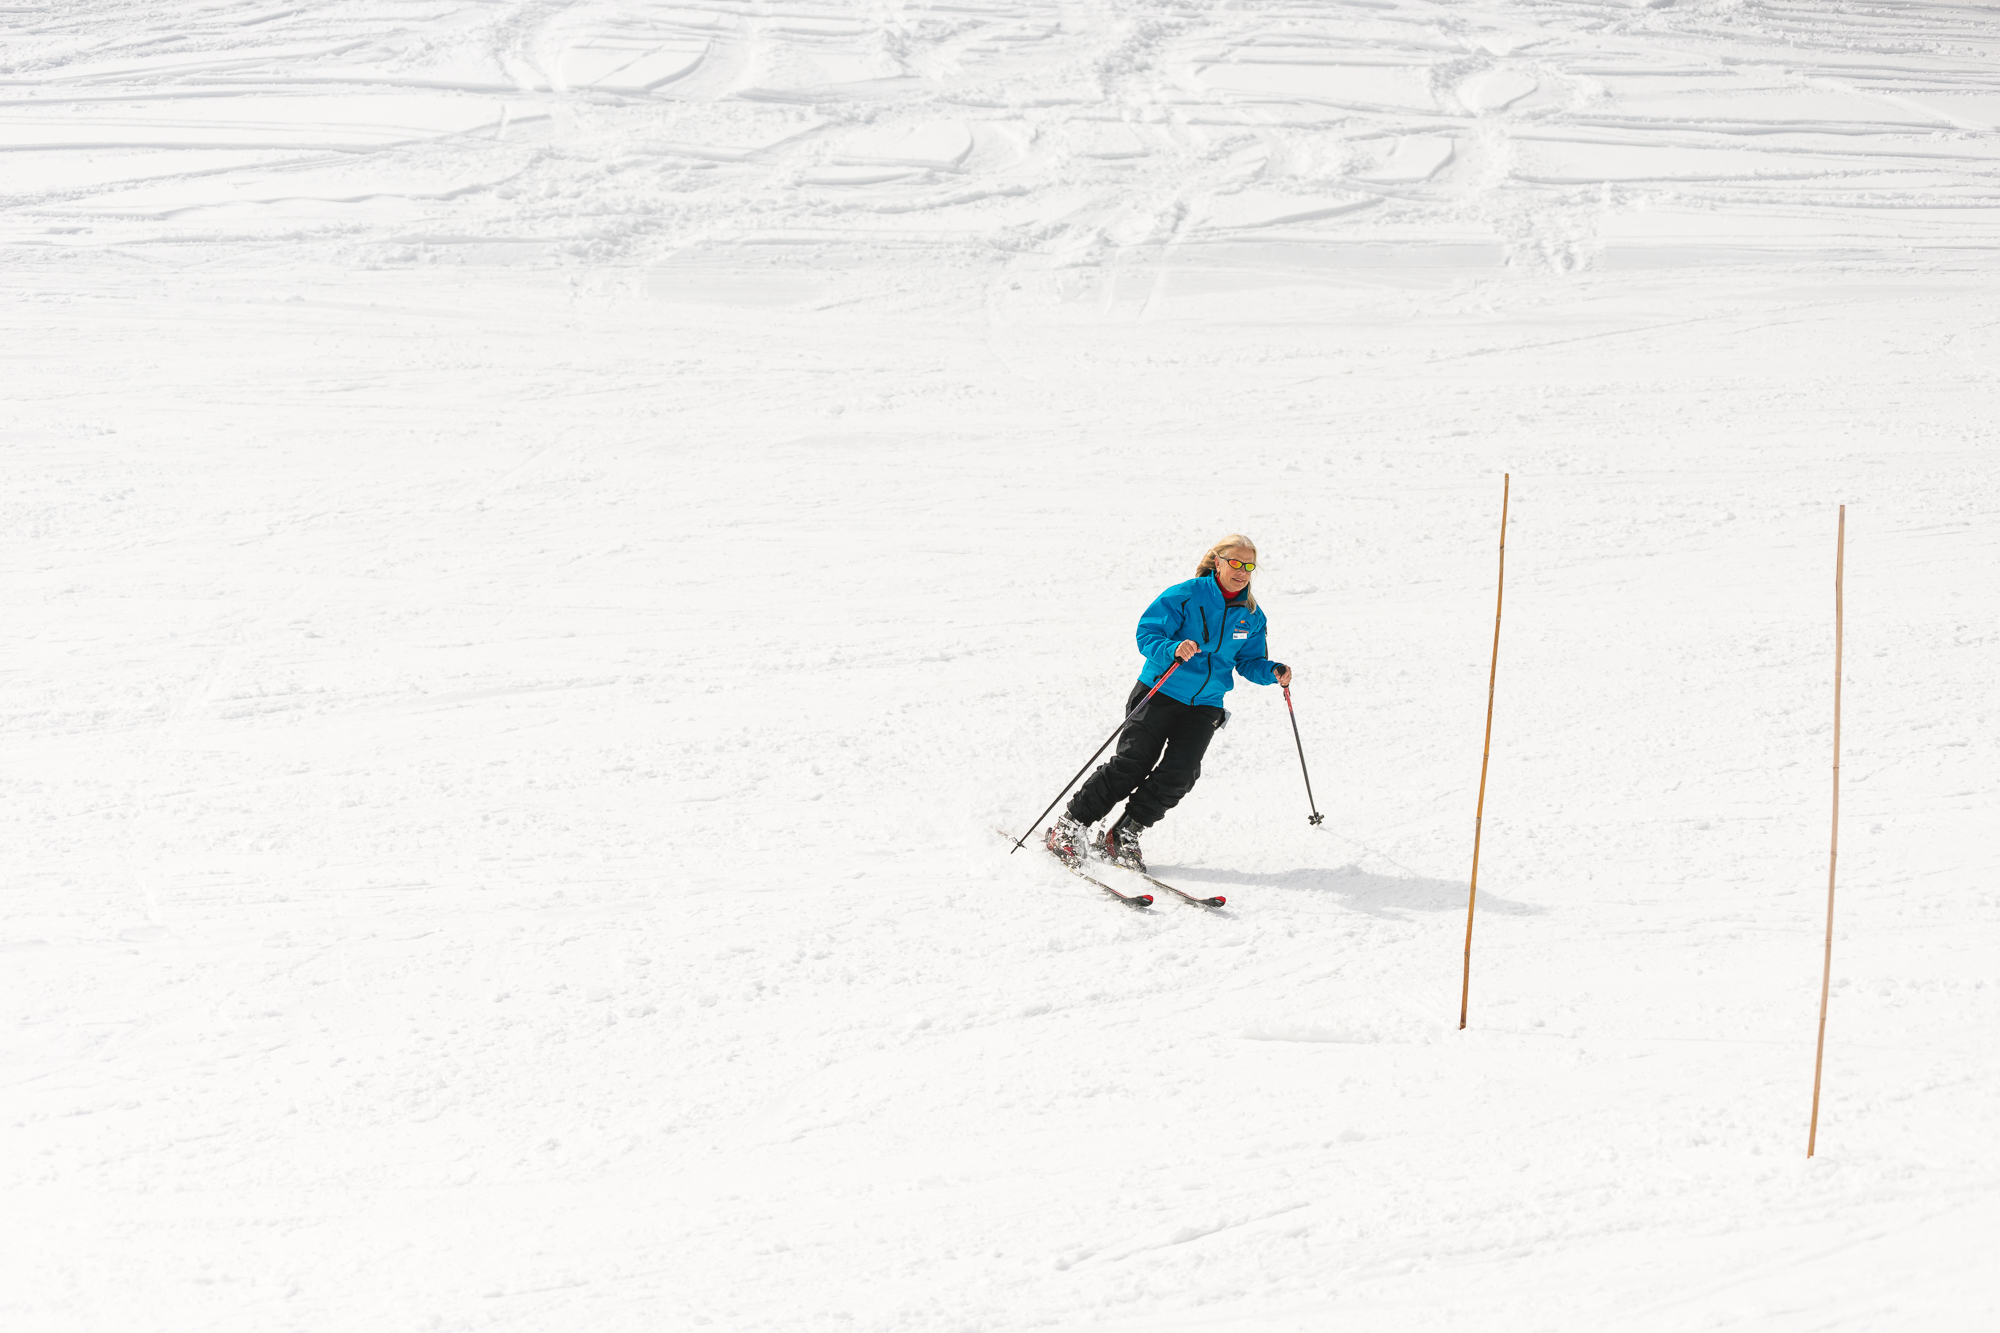 skiing event photography